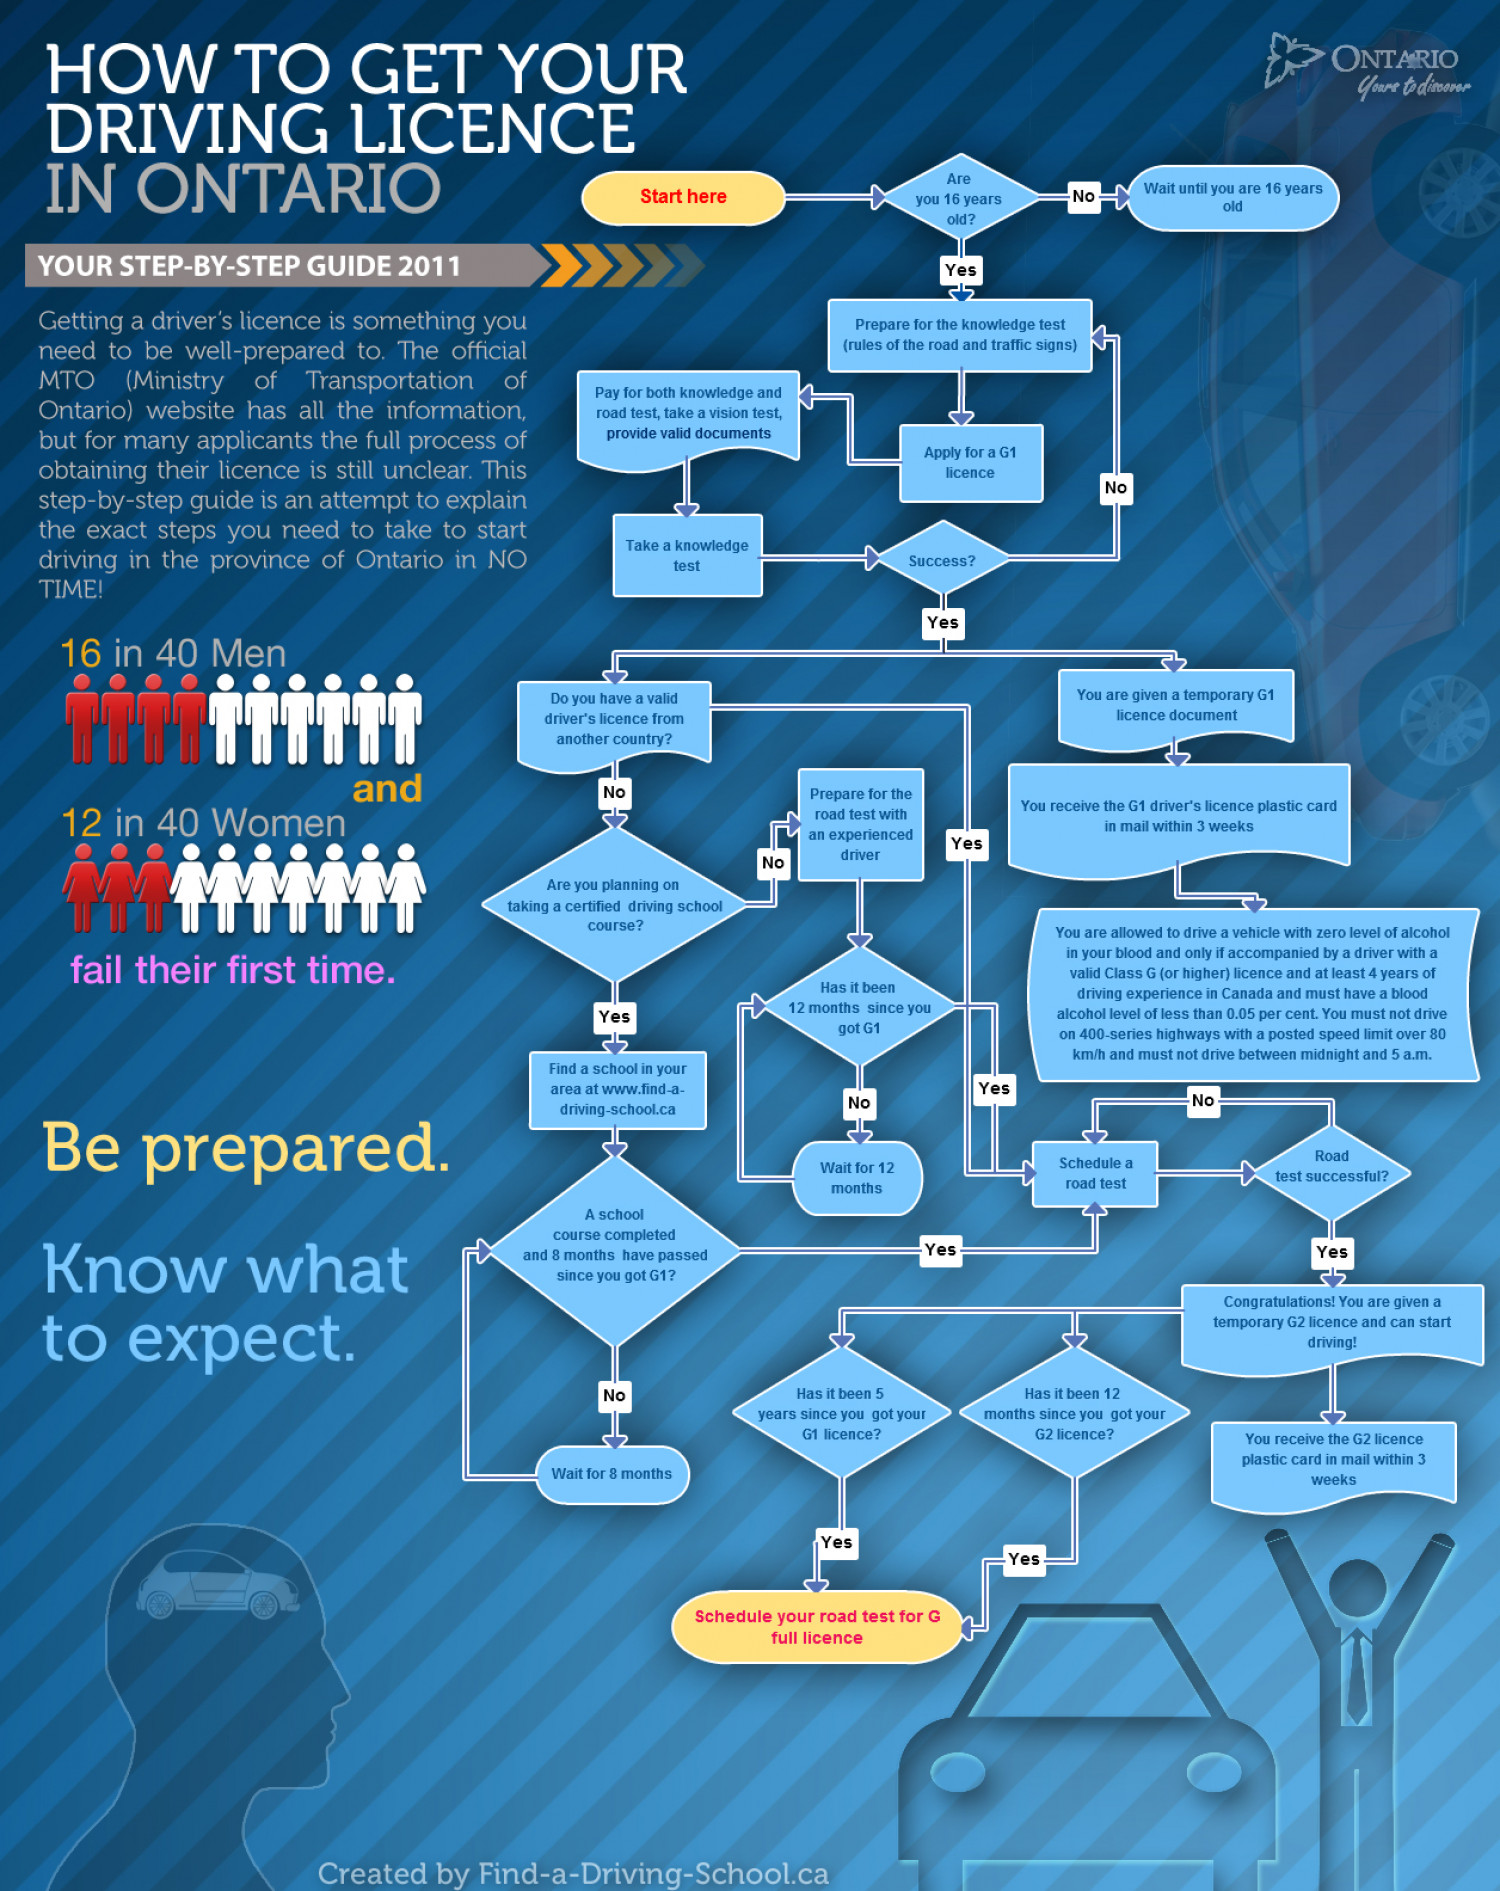 Getting Your Driver's License in Canada Infographic